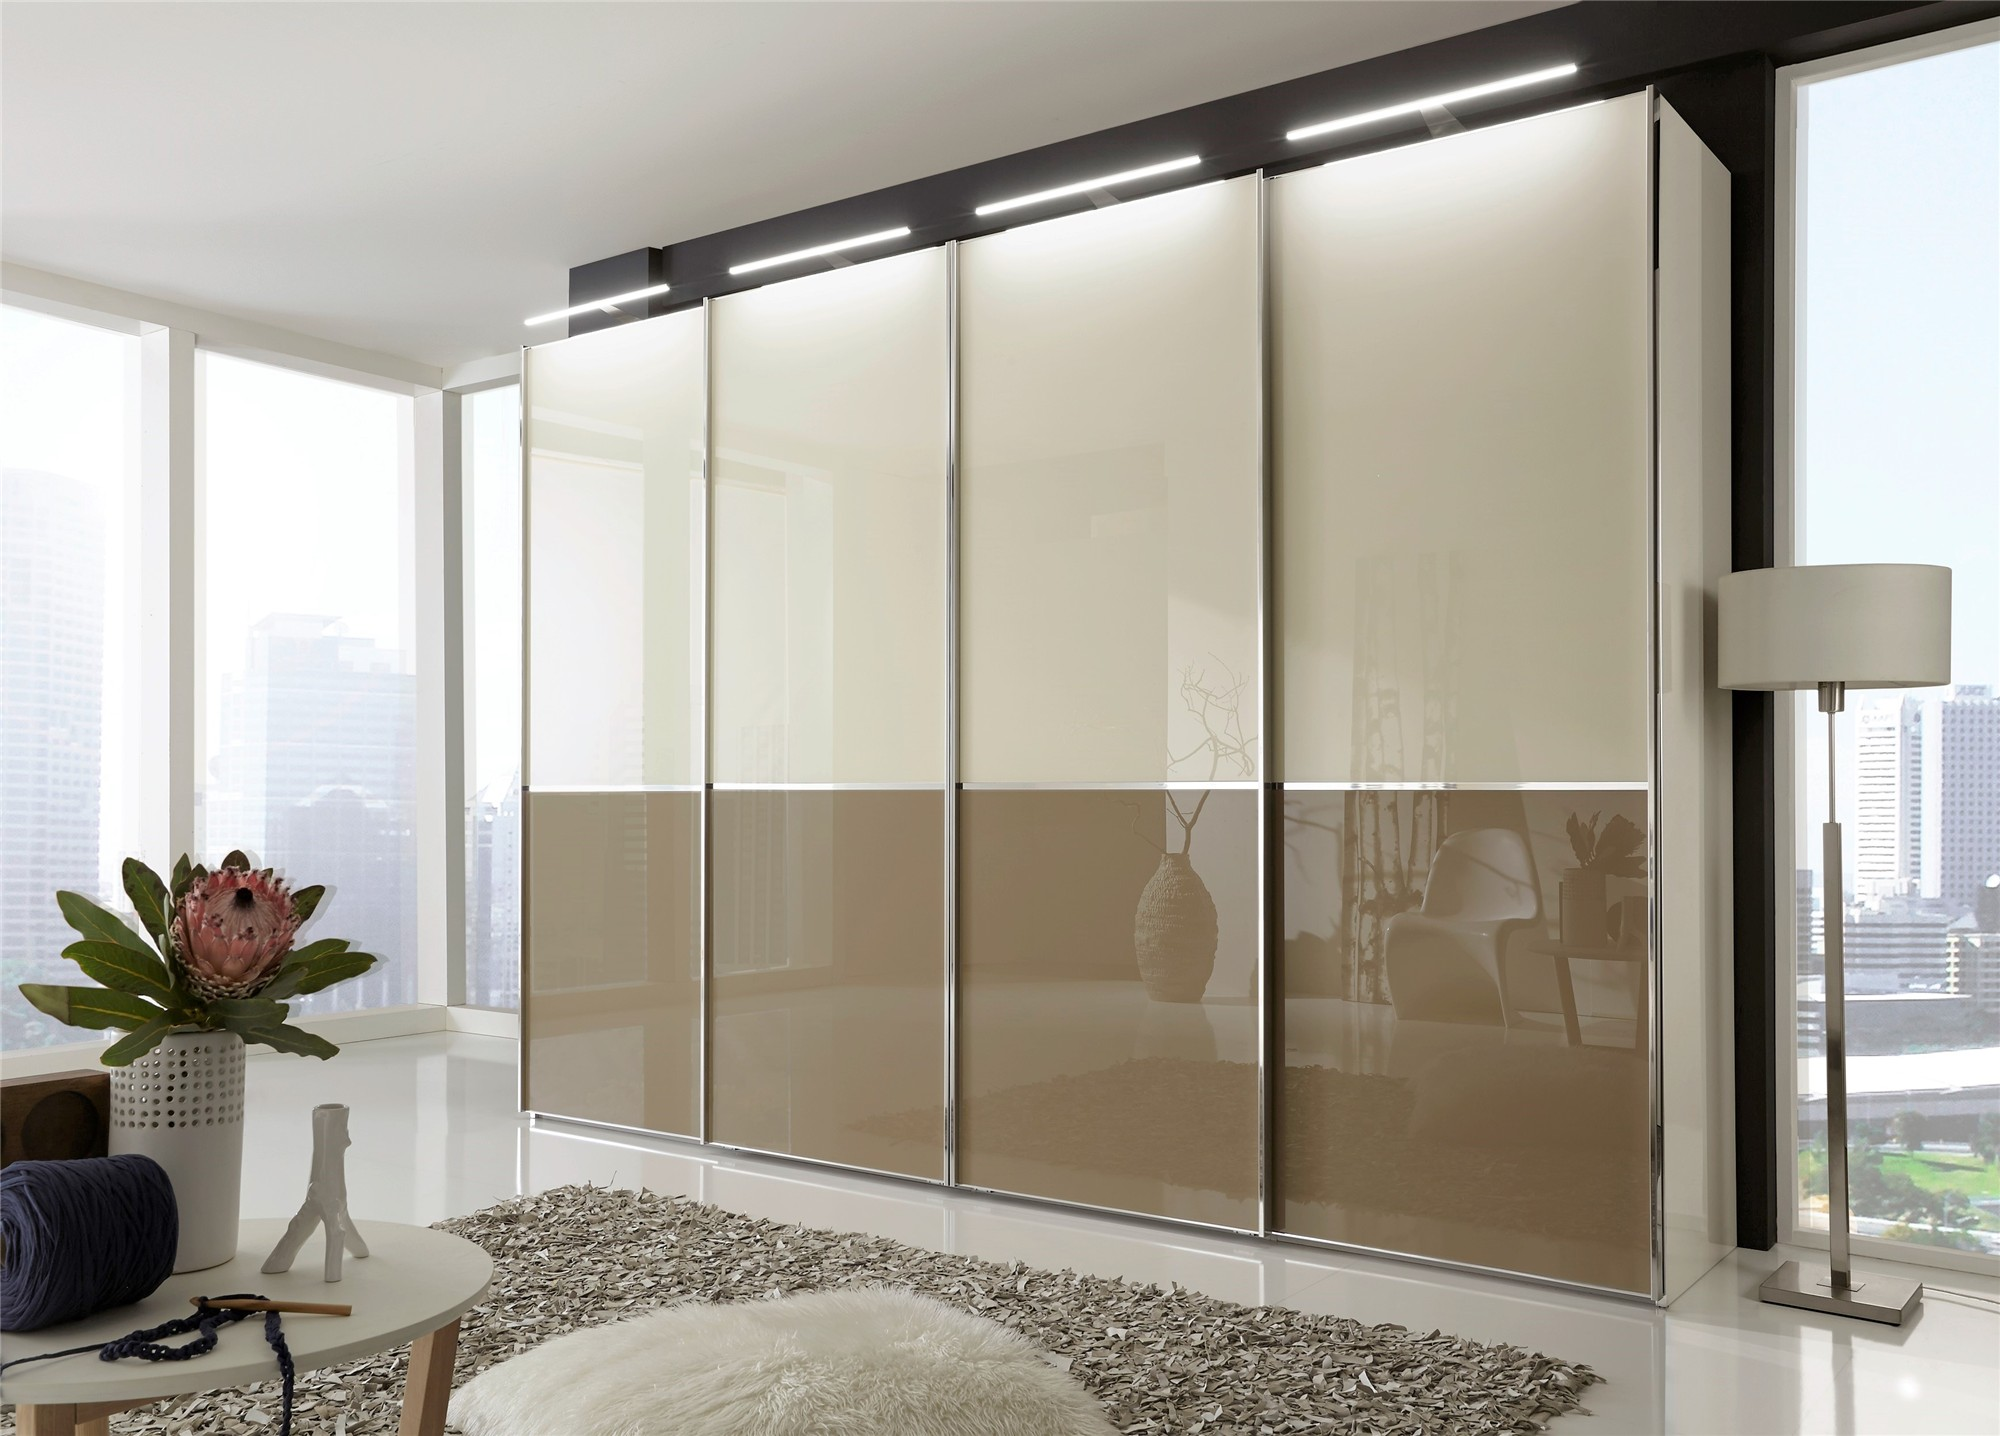 stylform nyx white black magnolia glass or mix with mirrors head2bed uk. Black Bedroom Furniture Sets. Home Design Ideas